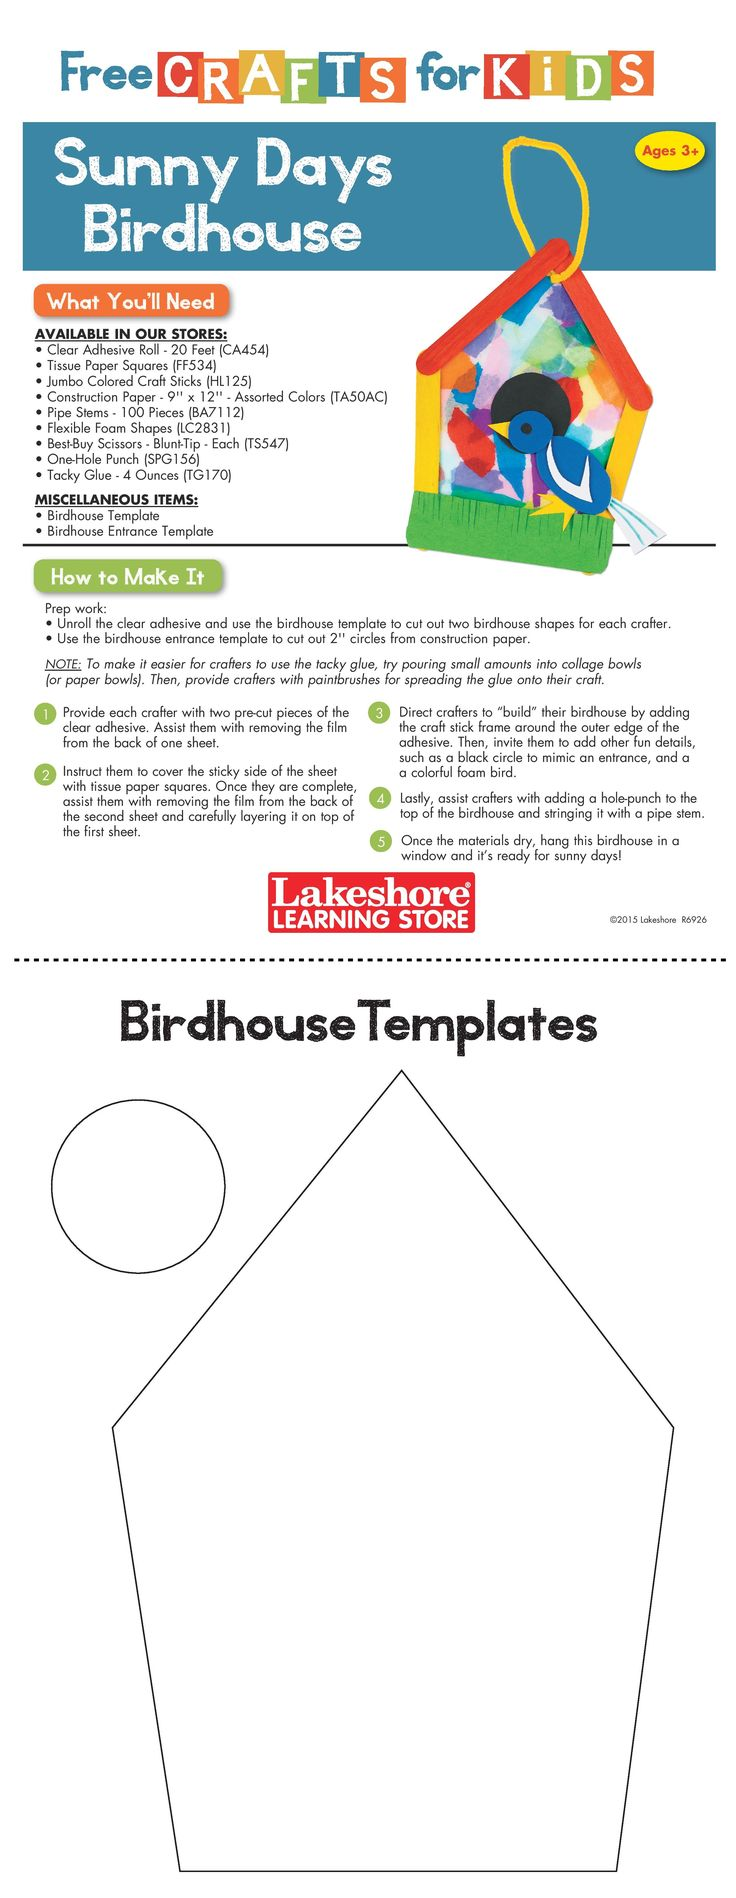 Instruction Sheet from Lakeshore's Free Crafts for Kids event featuring the Sunny Days Birdhouse craft.